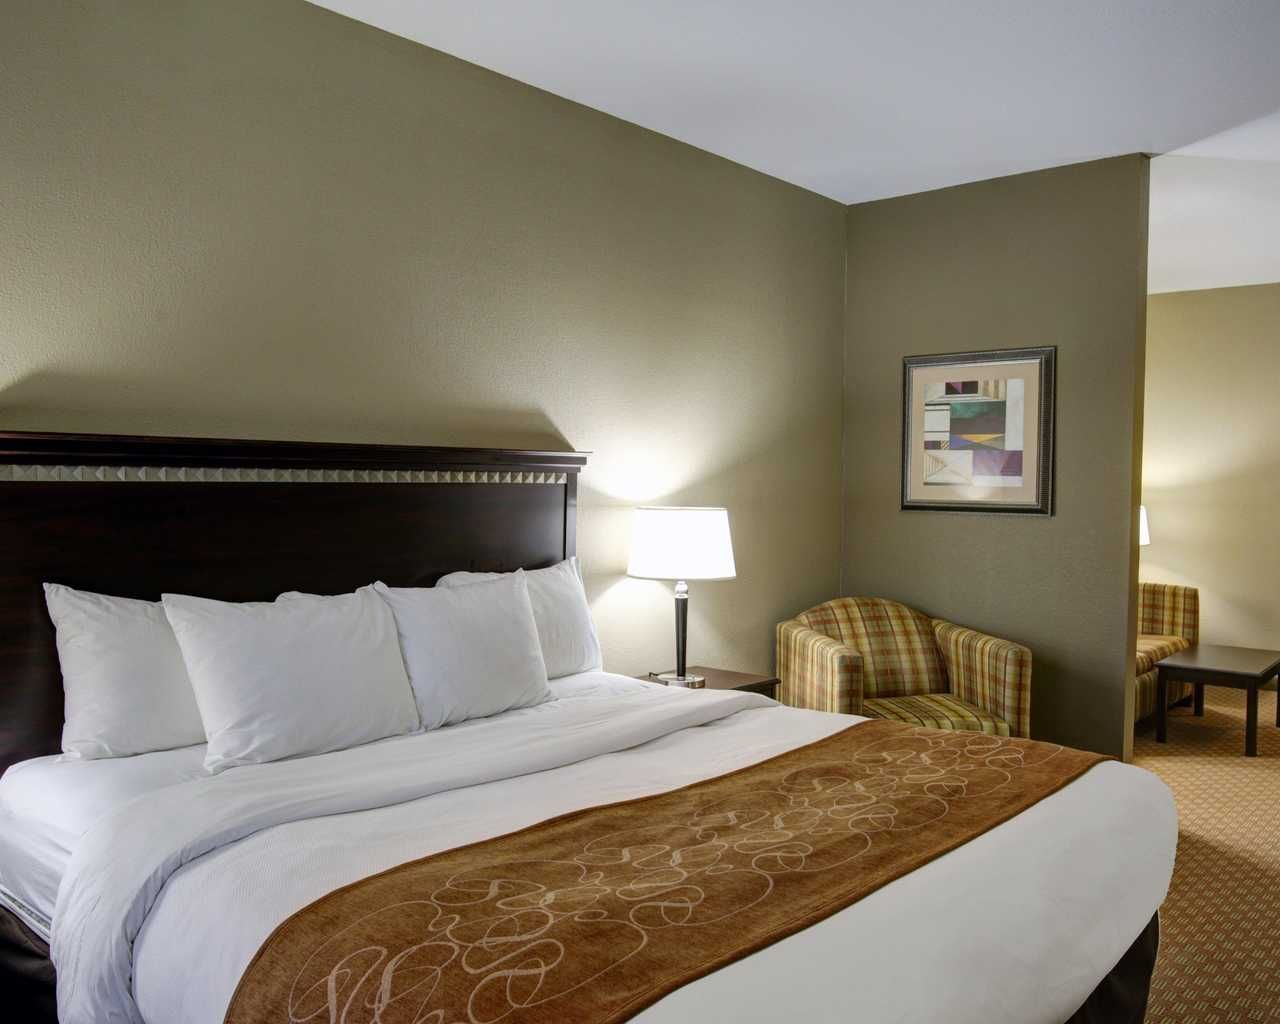 For Business Meeting Book Hotels Near Fort Hood Tx Killeen City